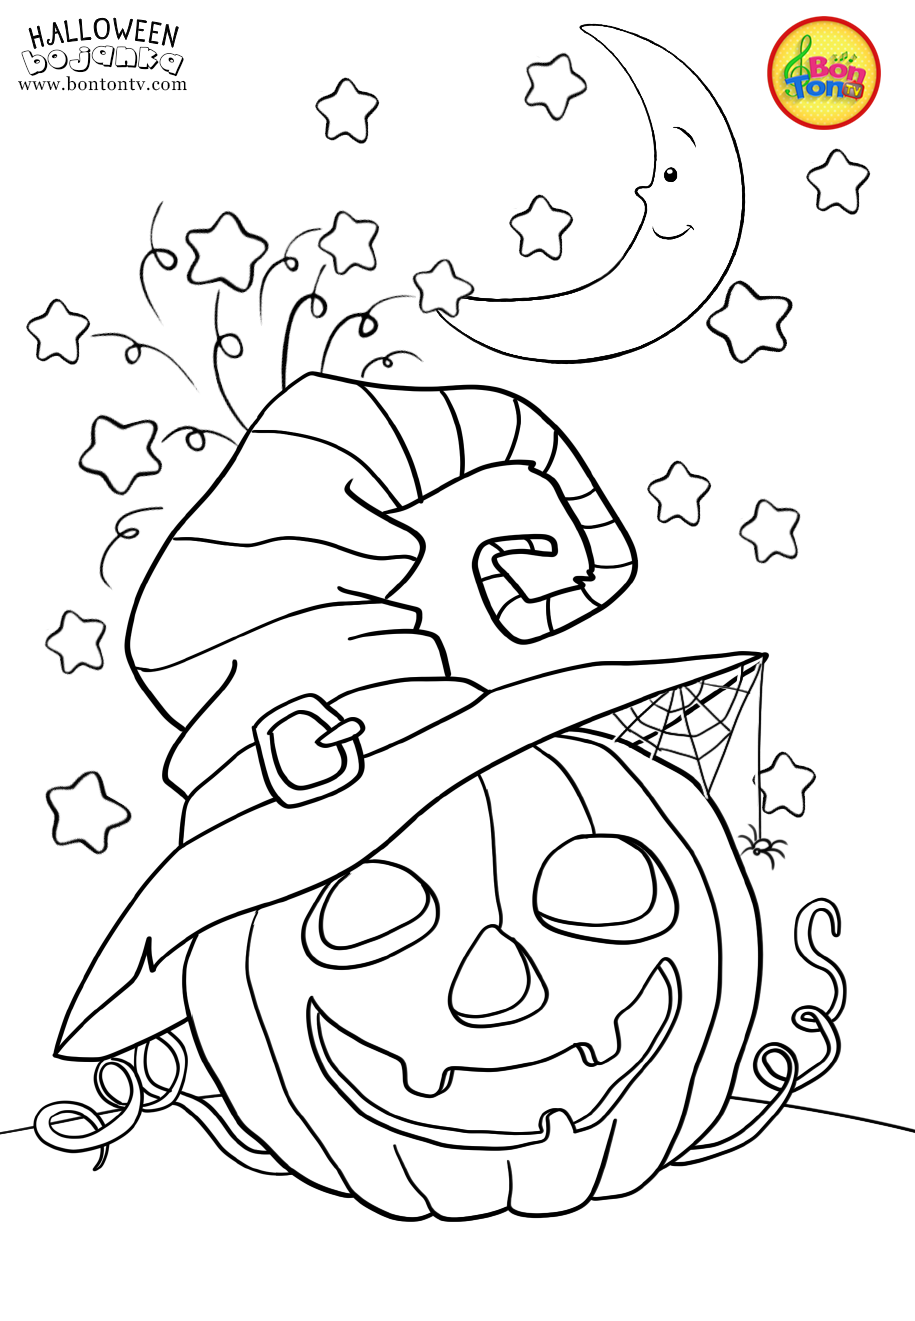 Halloween Coloring Pages For Kids Free Preschool Printables Noc Vjestica Halloween Coloring Book Halloween Coloring Pages Printable Pumpkin Coloring Pages